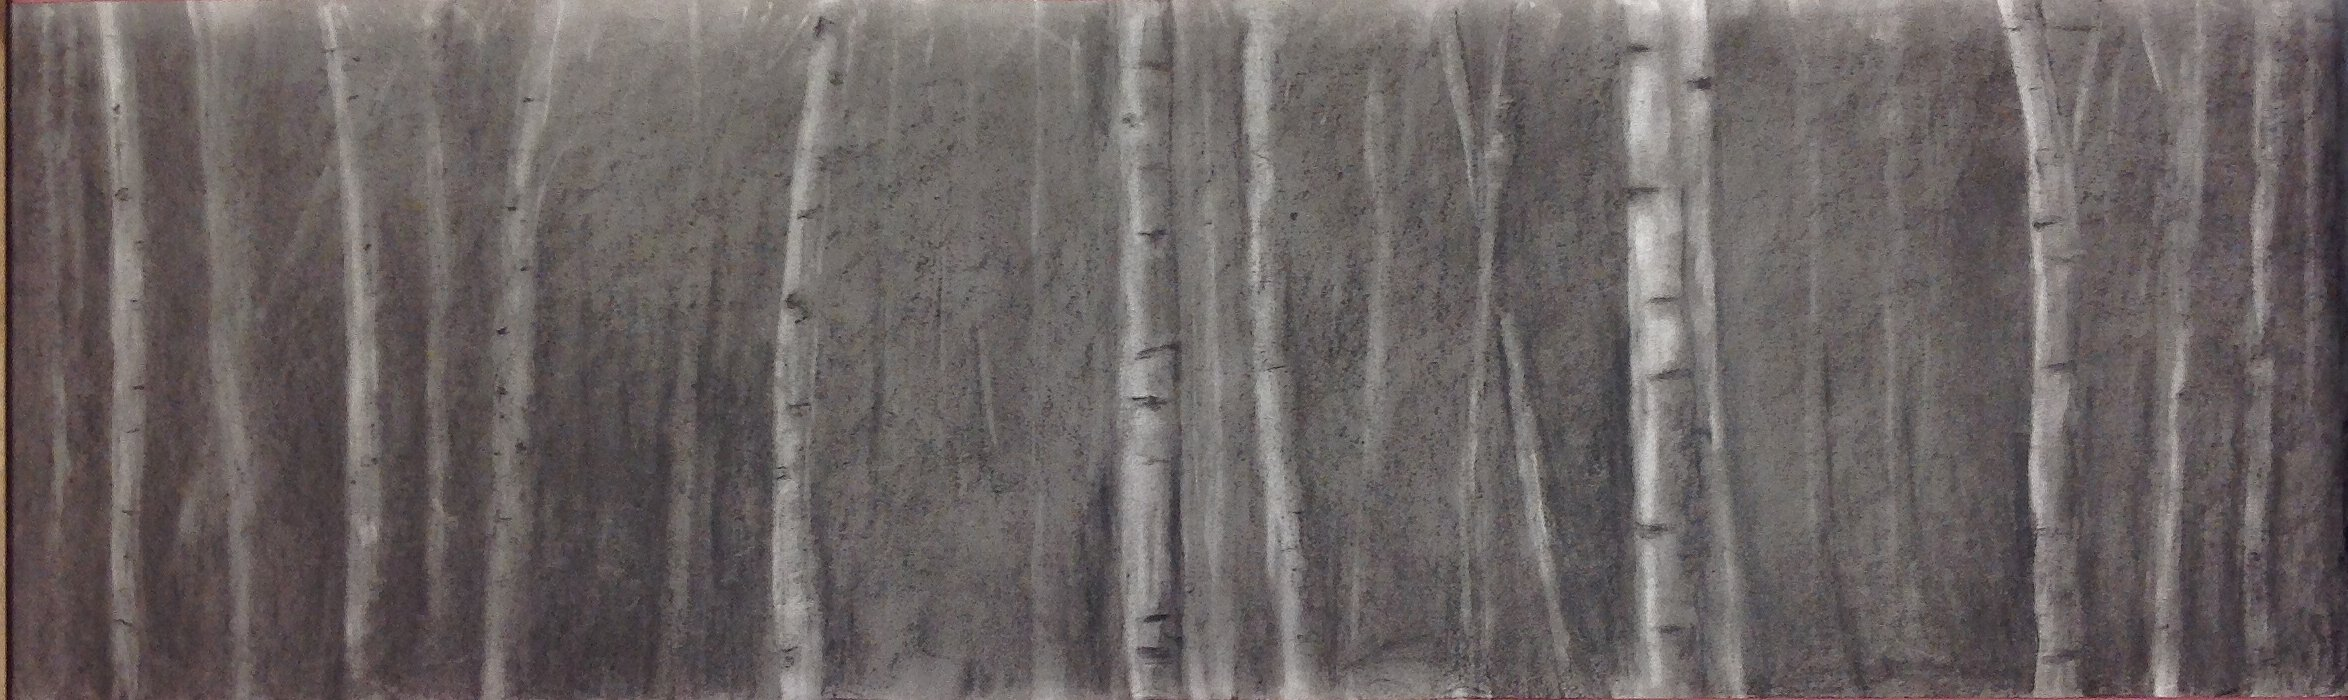 beyond the birch 1